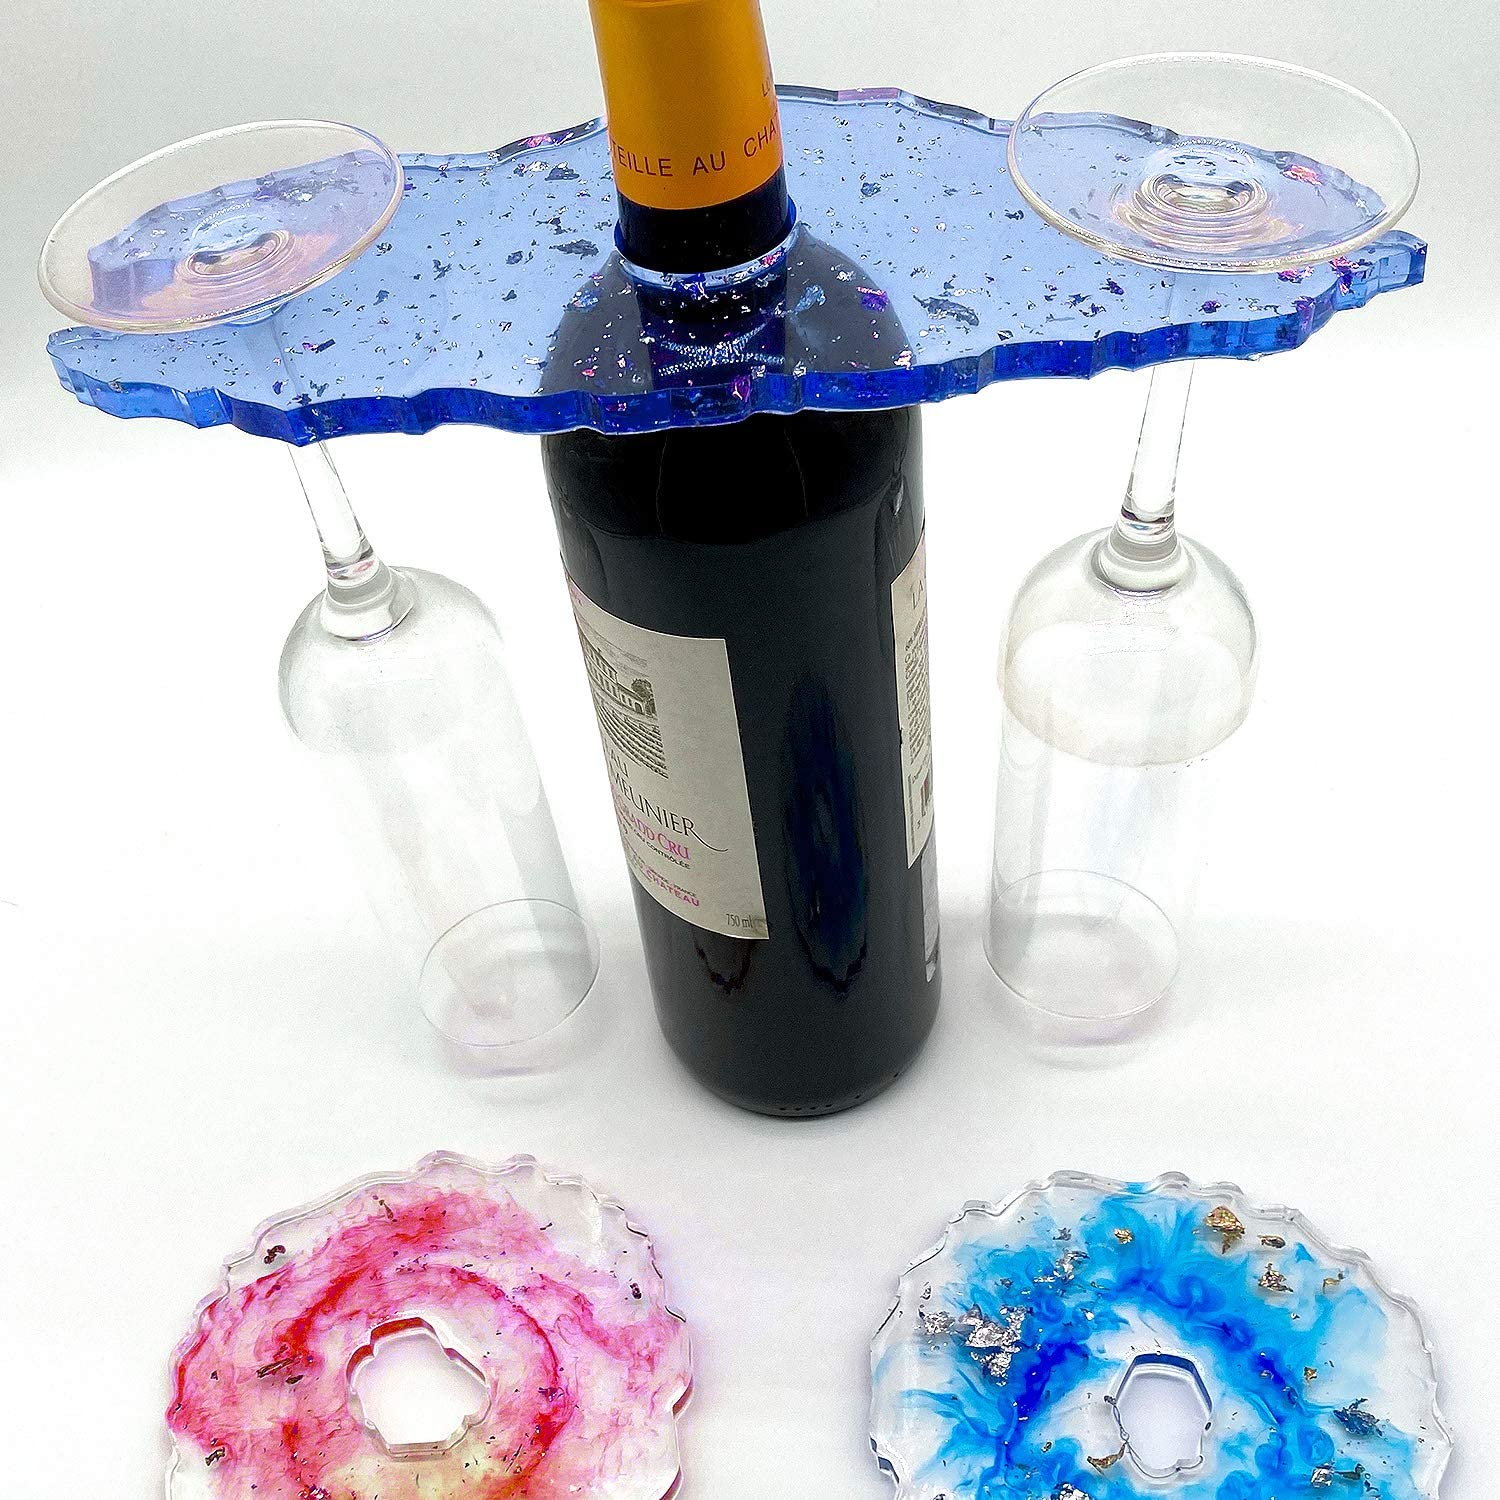 SAVITA Wine Glass Holder Epoxy Resin Mold DIY Making Wine Rack Mold with 2Pcs Coasters Molds and 12 Boxes Shining Glitters for Home Decoration